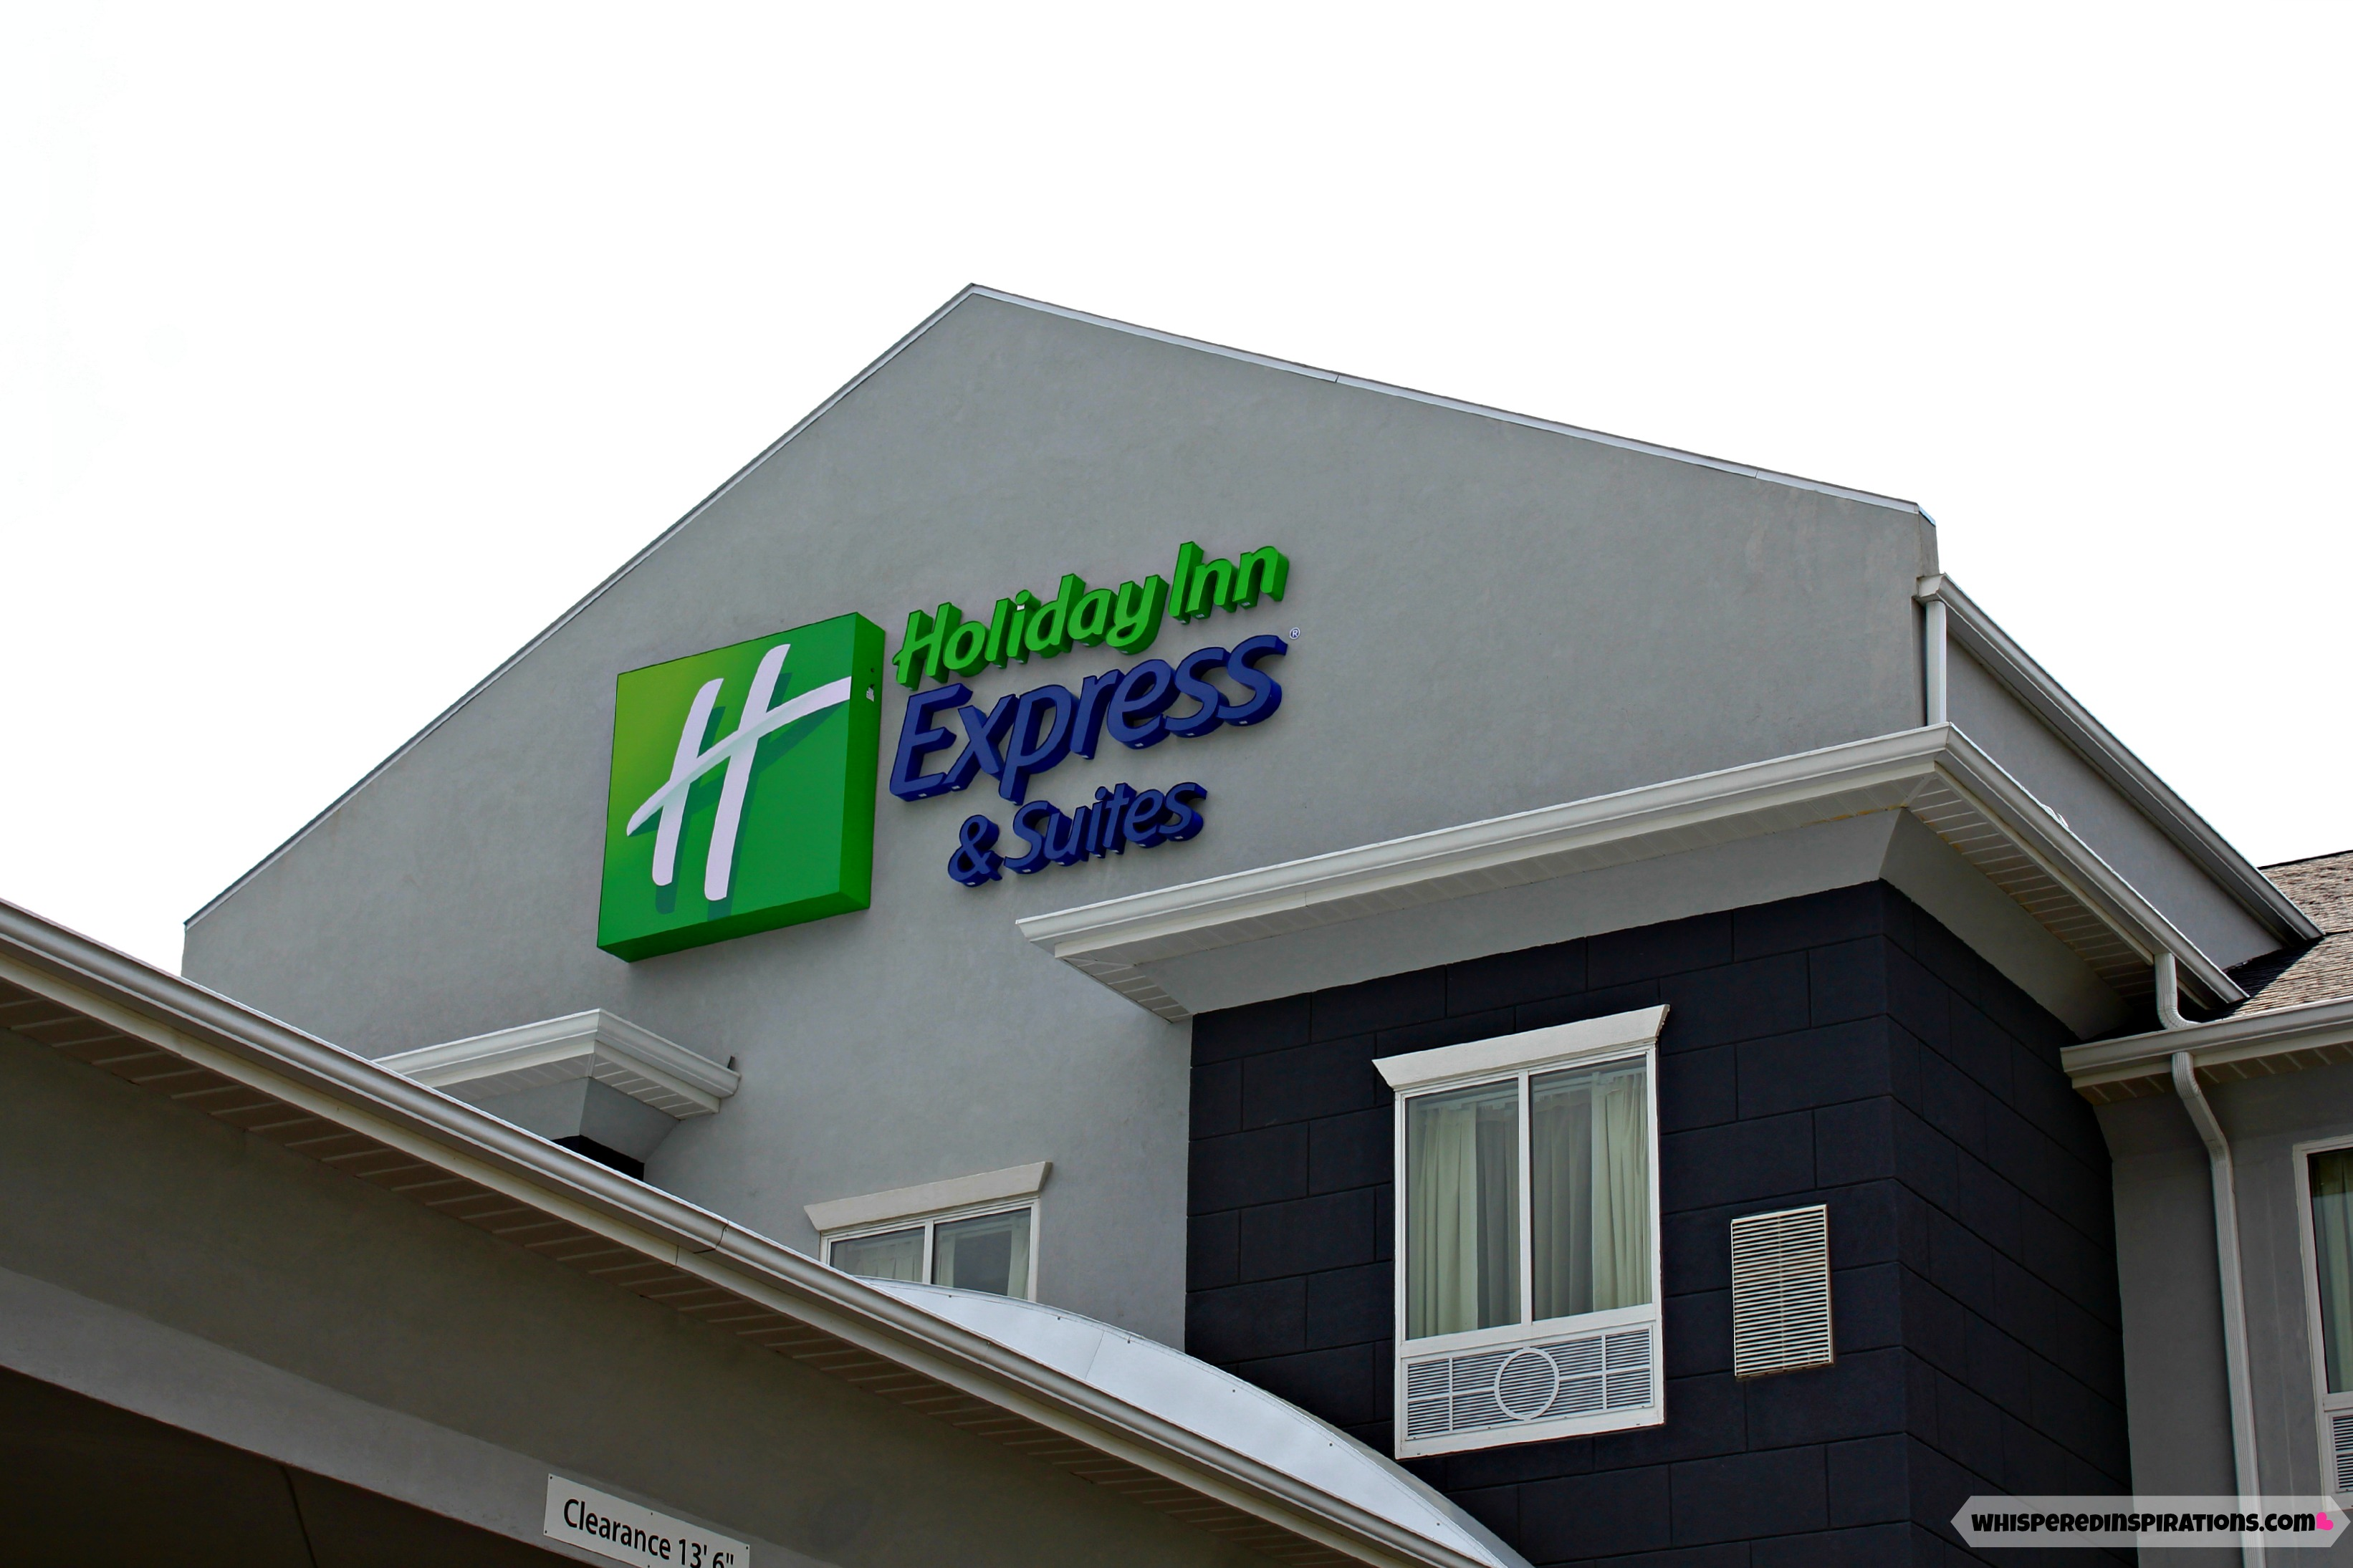 Holiday Inn Express & Suites: Check Out This Beautiful Gem in Fremont, Ohio! Stay Inspired, Get Refreshed and Relax with Your Family at the Holiday Inn Express! #travel